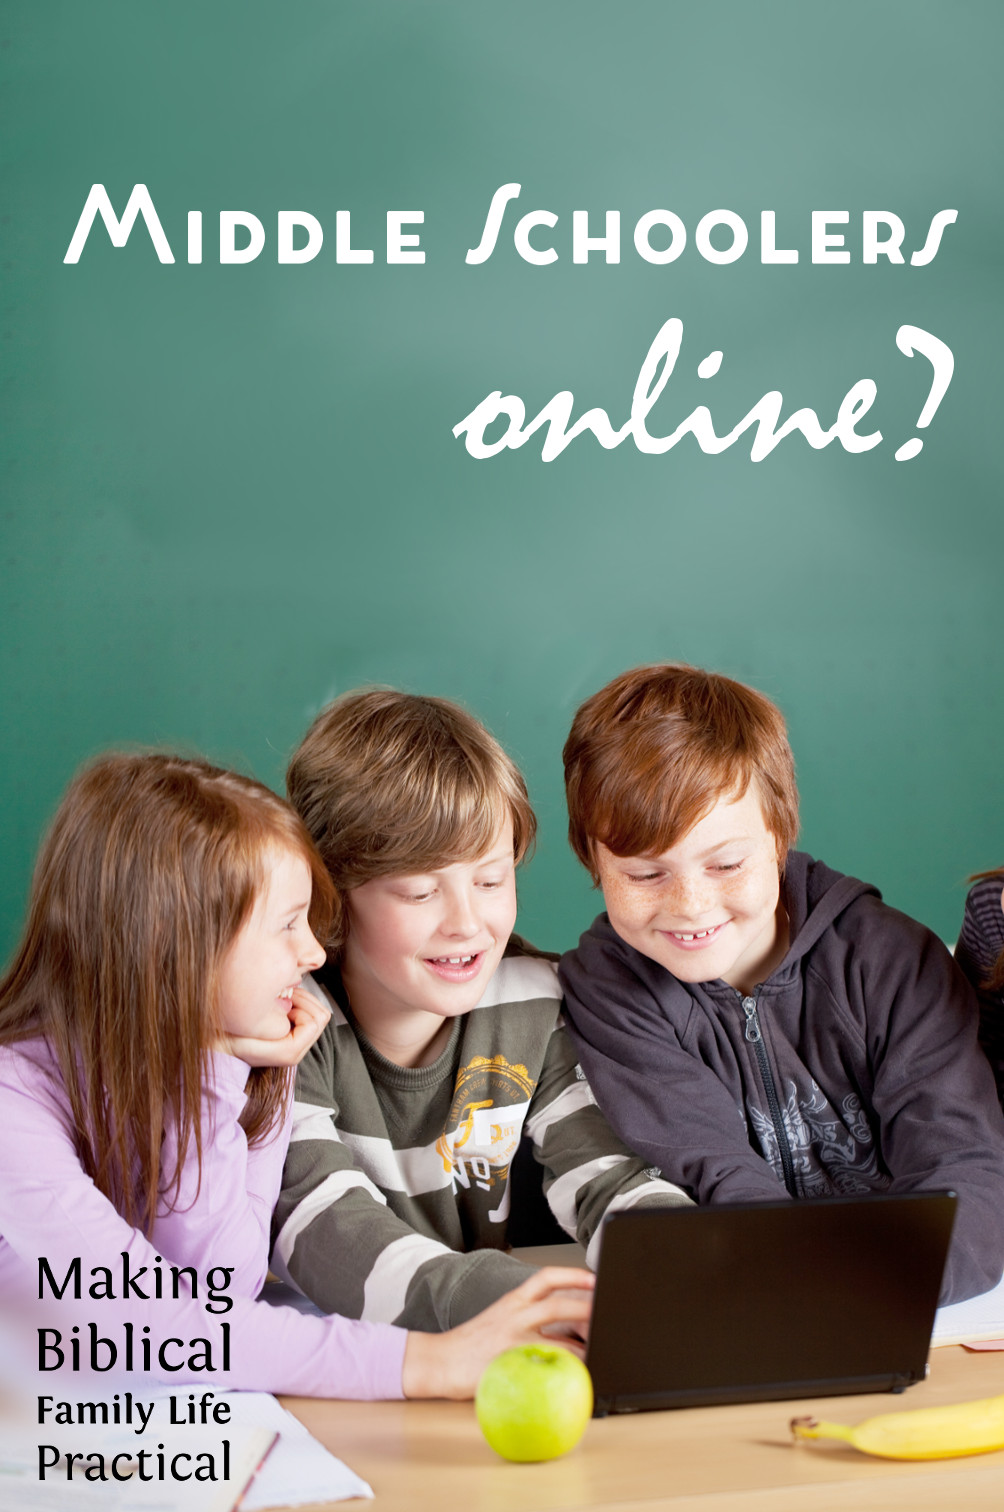 Should your middle schooler be online?